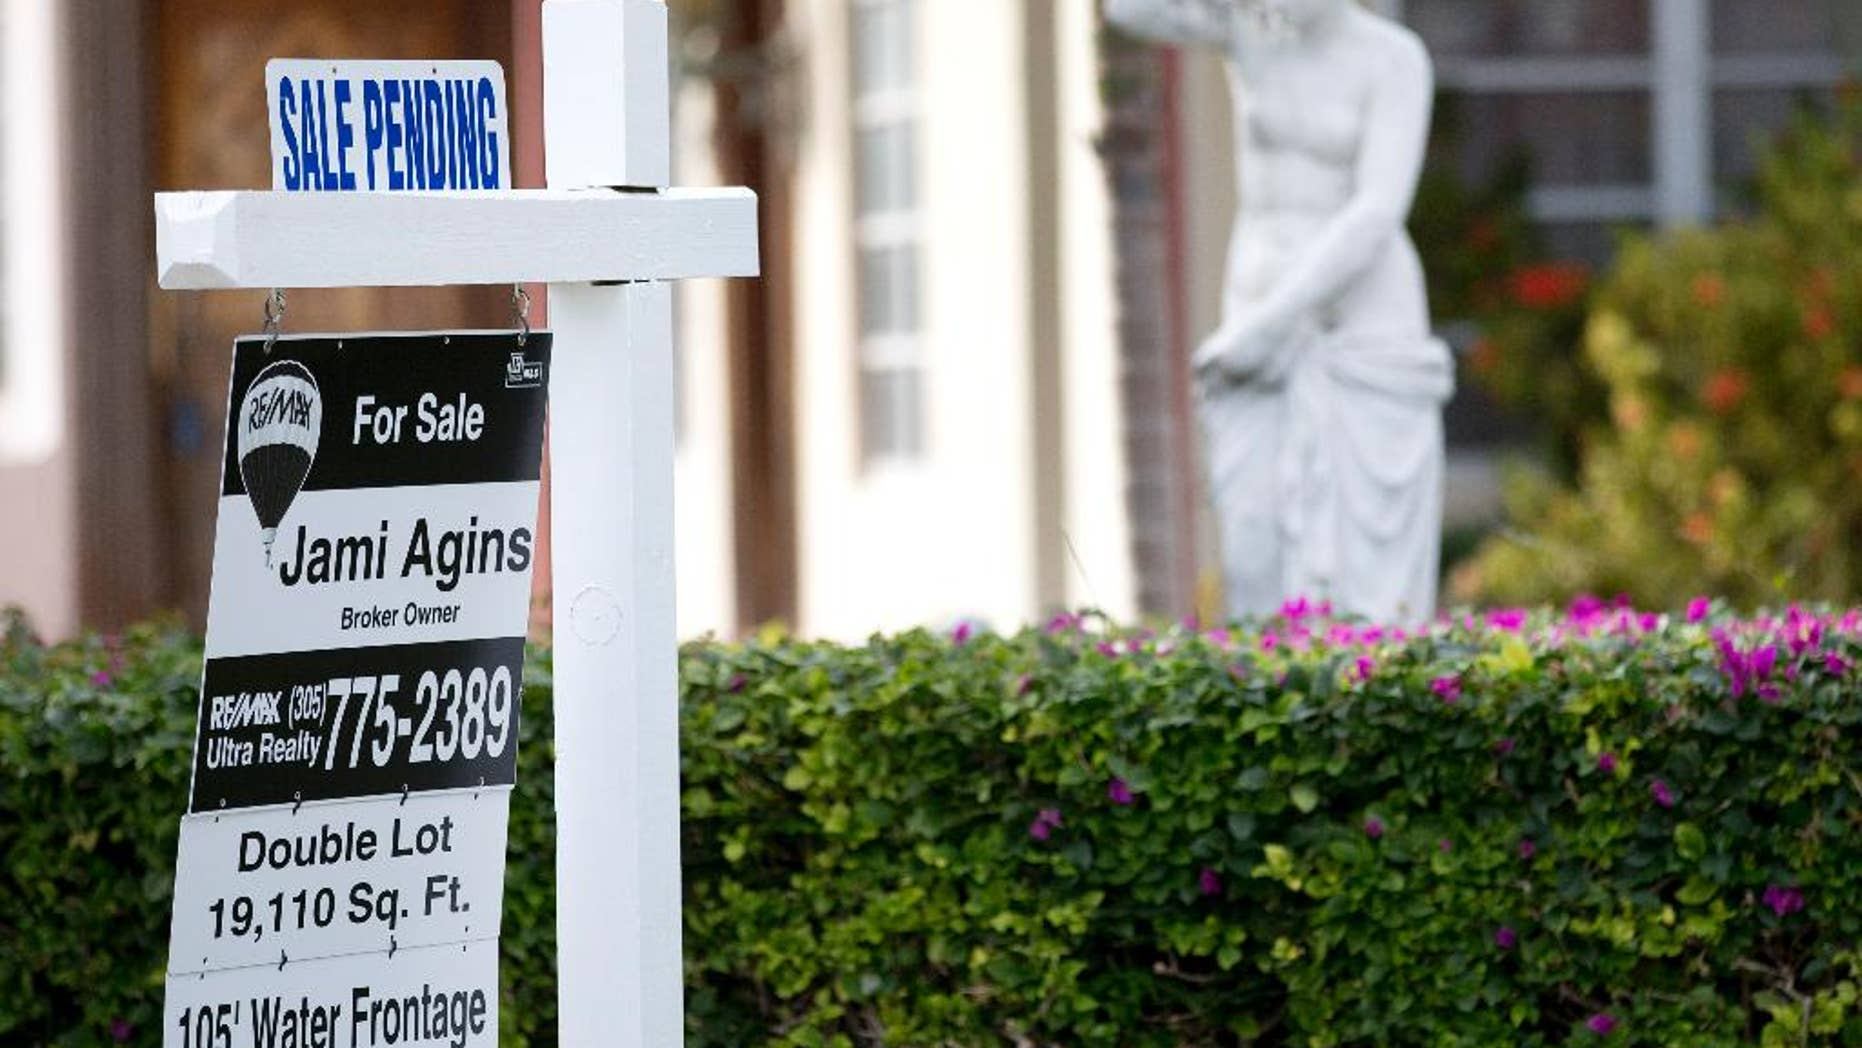 """In this Thursday, Jan. 8, 2015 photo, a """"sale pending"""" placcard is placed atop a realty sign outside a home for sale in Surfside, Fla. More Americans signed contracts to buy homes in February, the National Association of Realtors reported Monday, March 30, 2015, evidence that the spring buying season could open strong after sluggish sales for much of the winter. (AP Photo/Wilfredo Lee)"""